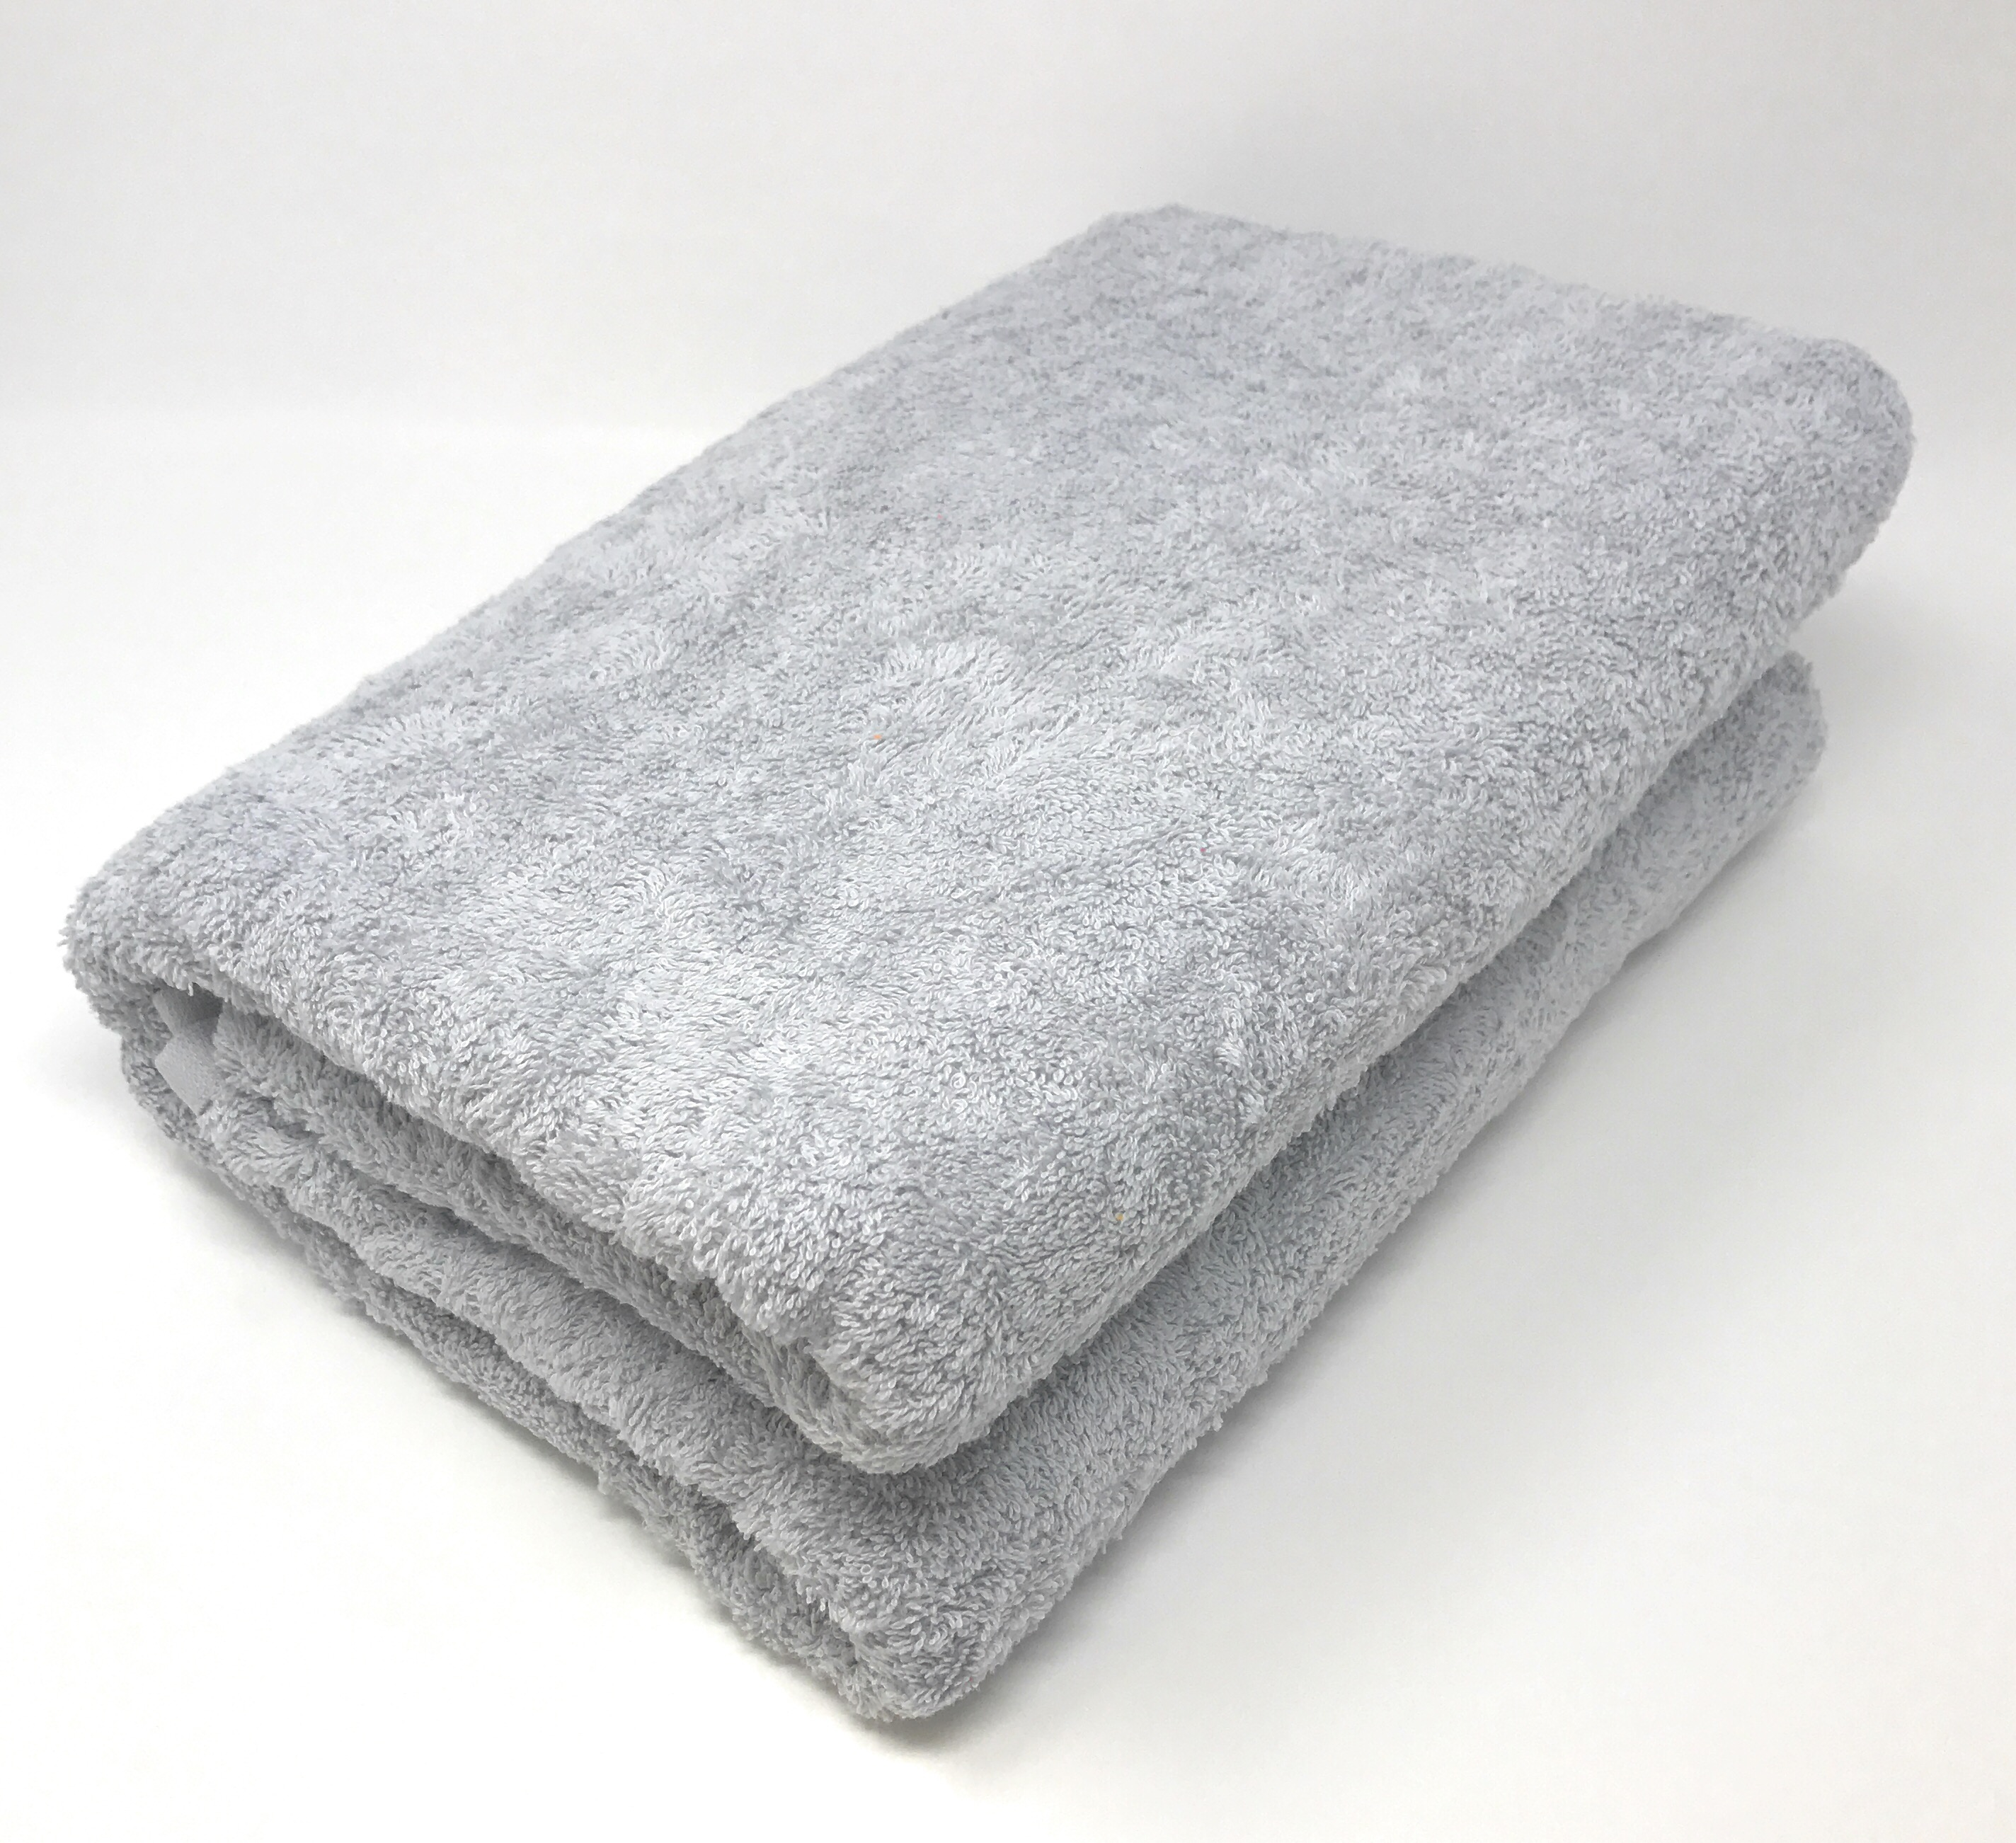 Goza Towels Cotton Oversized Bath Sheet Towel (40 x 70 inches) Silver / Light Grey